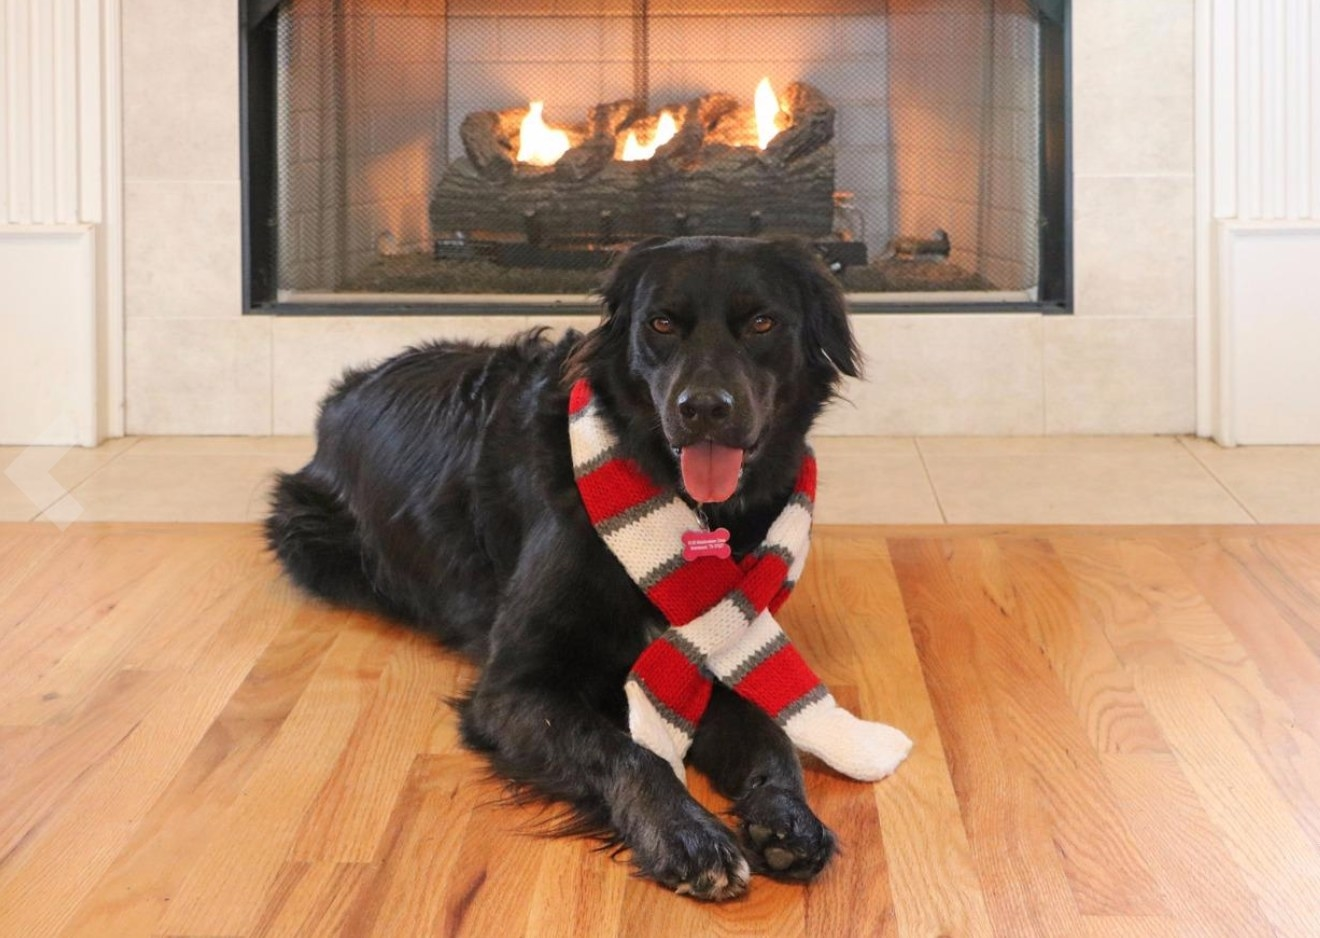 Dog wearing the red and white striped knit scarf